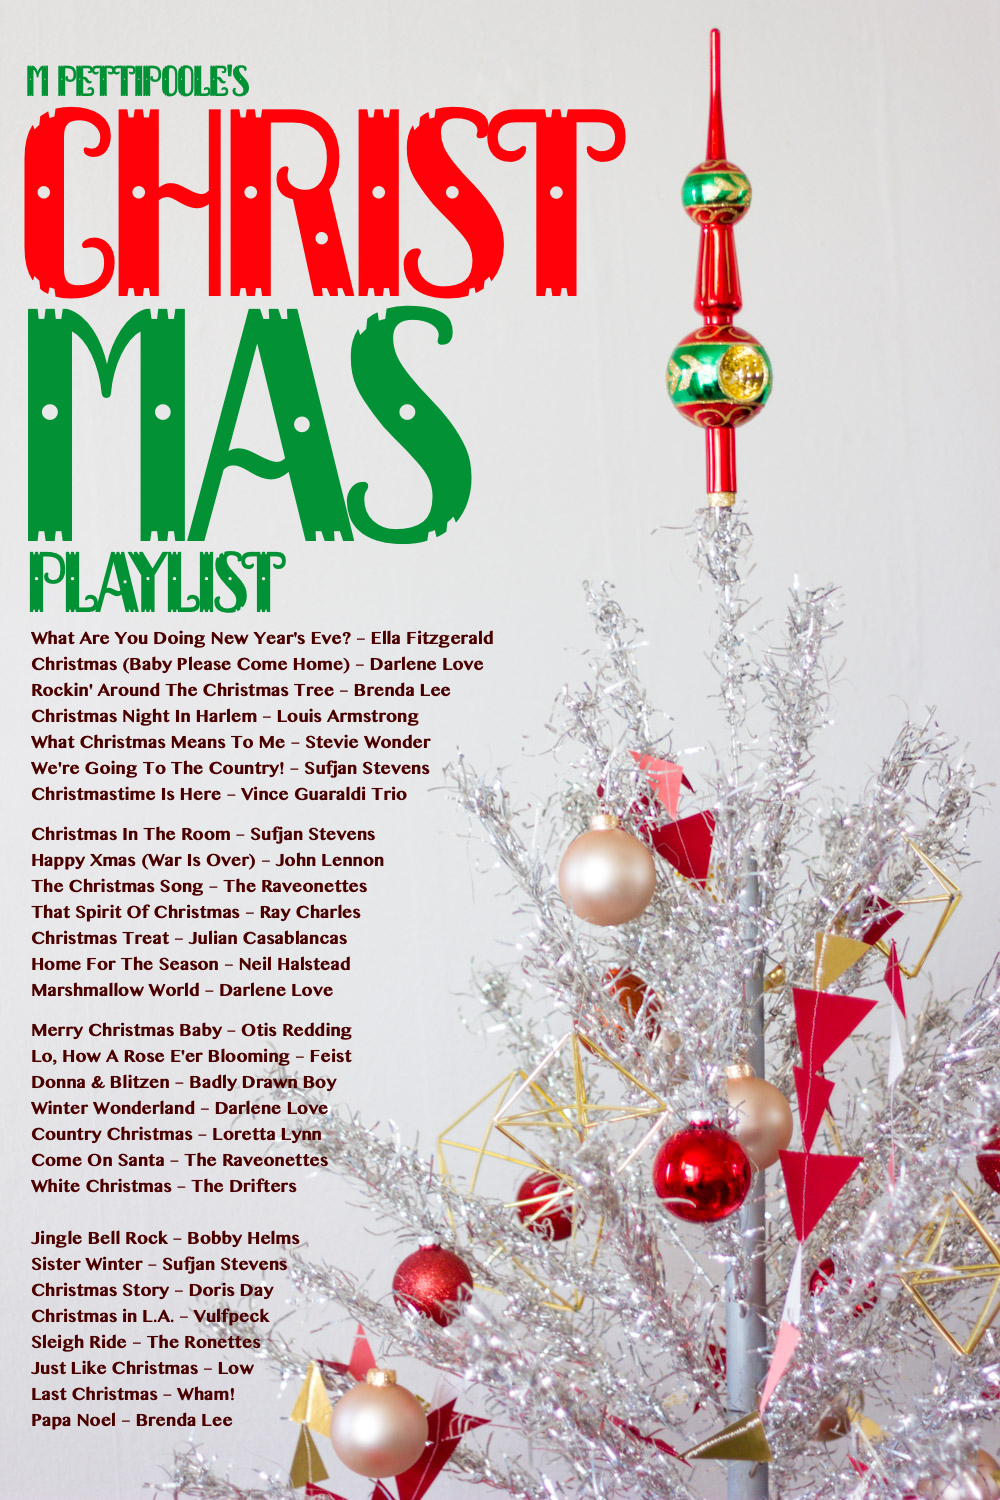 M Pettipoole's Christmas Playlist featuring Motown, Soul, Alternative and Classic Christmas songs